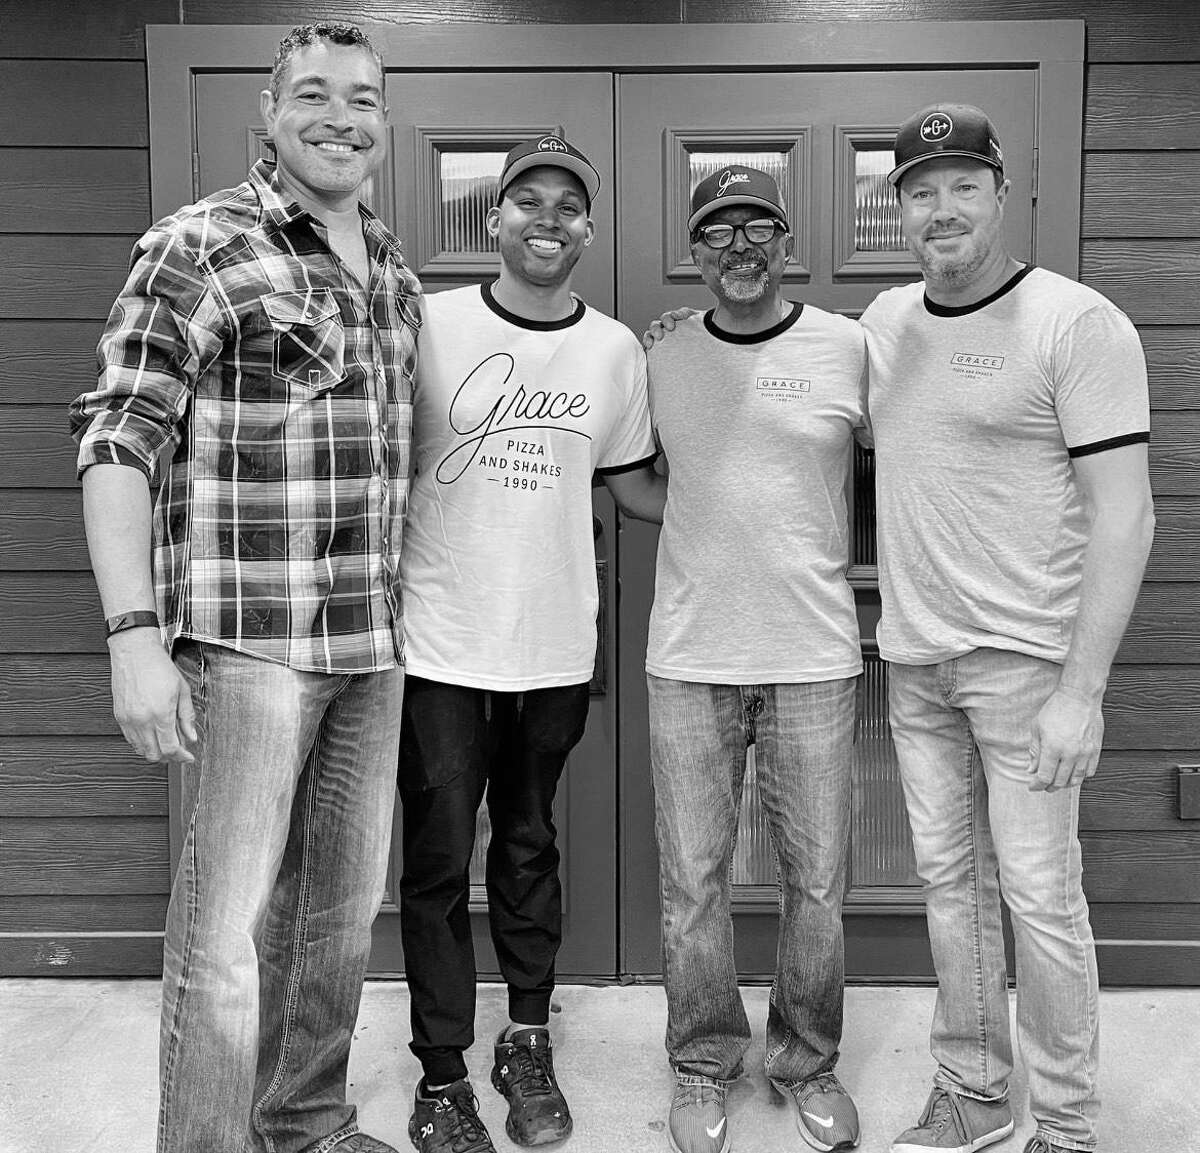 Grace Pizza and Shakes co-owners VJ Nandlal, second from left, and Adrian Hembree, right, recently opened the restaurant in Alvin. Also shown are Hugh Patton, left, and Vince Nandlal Sr.